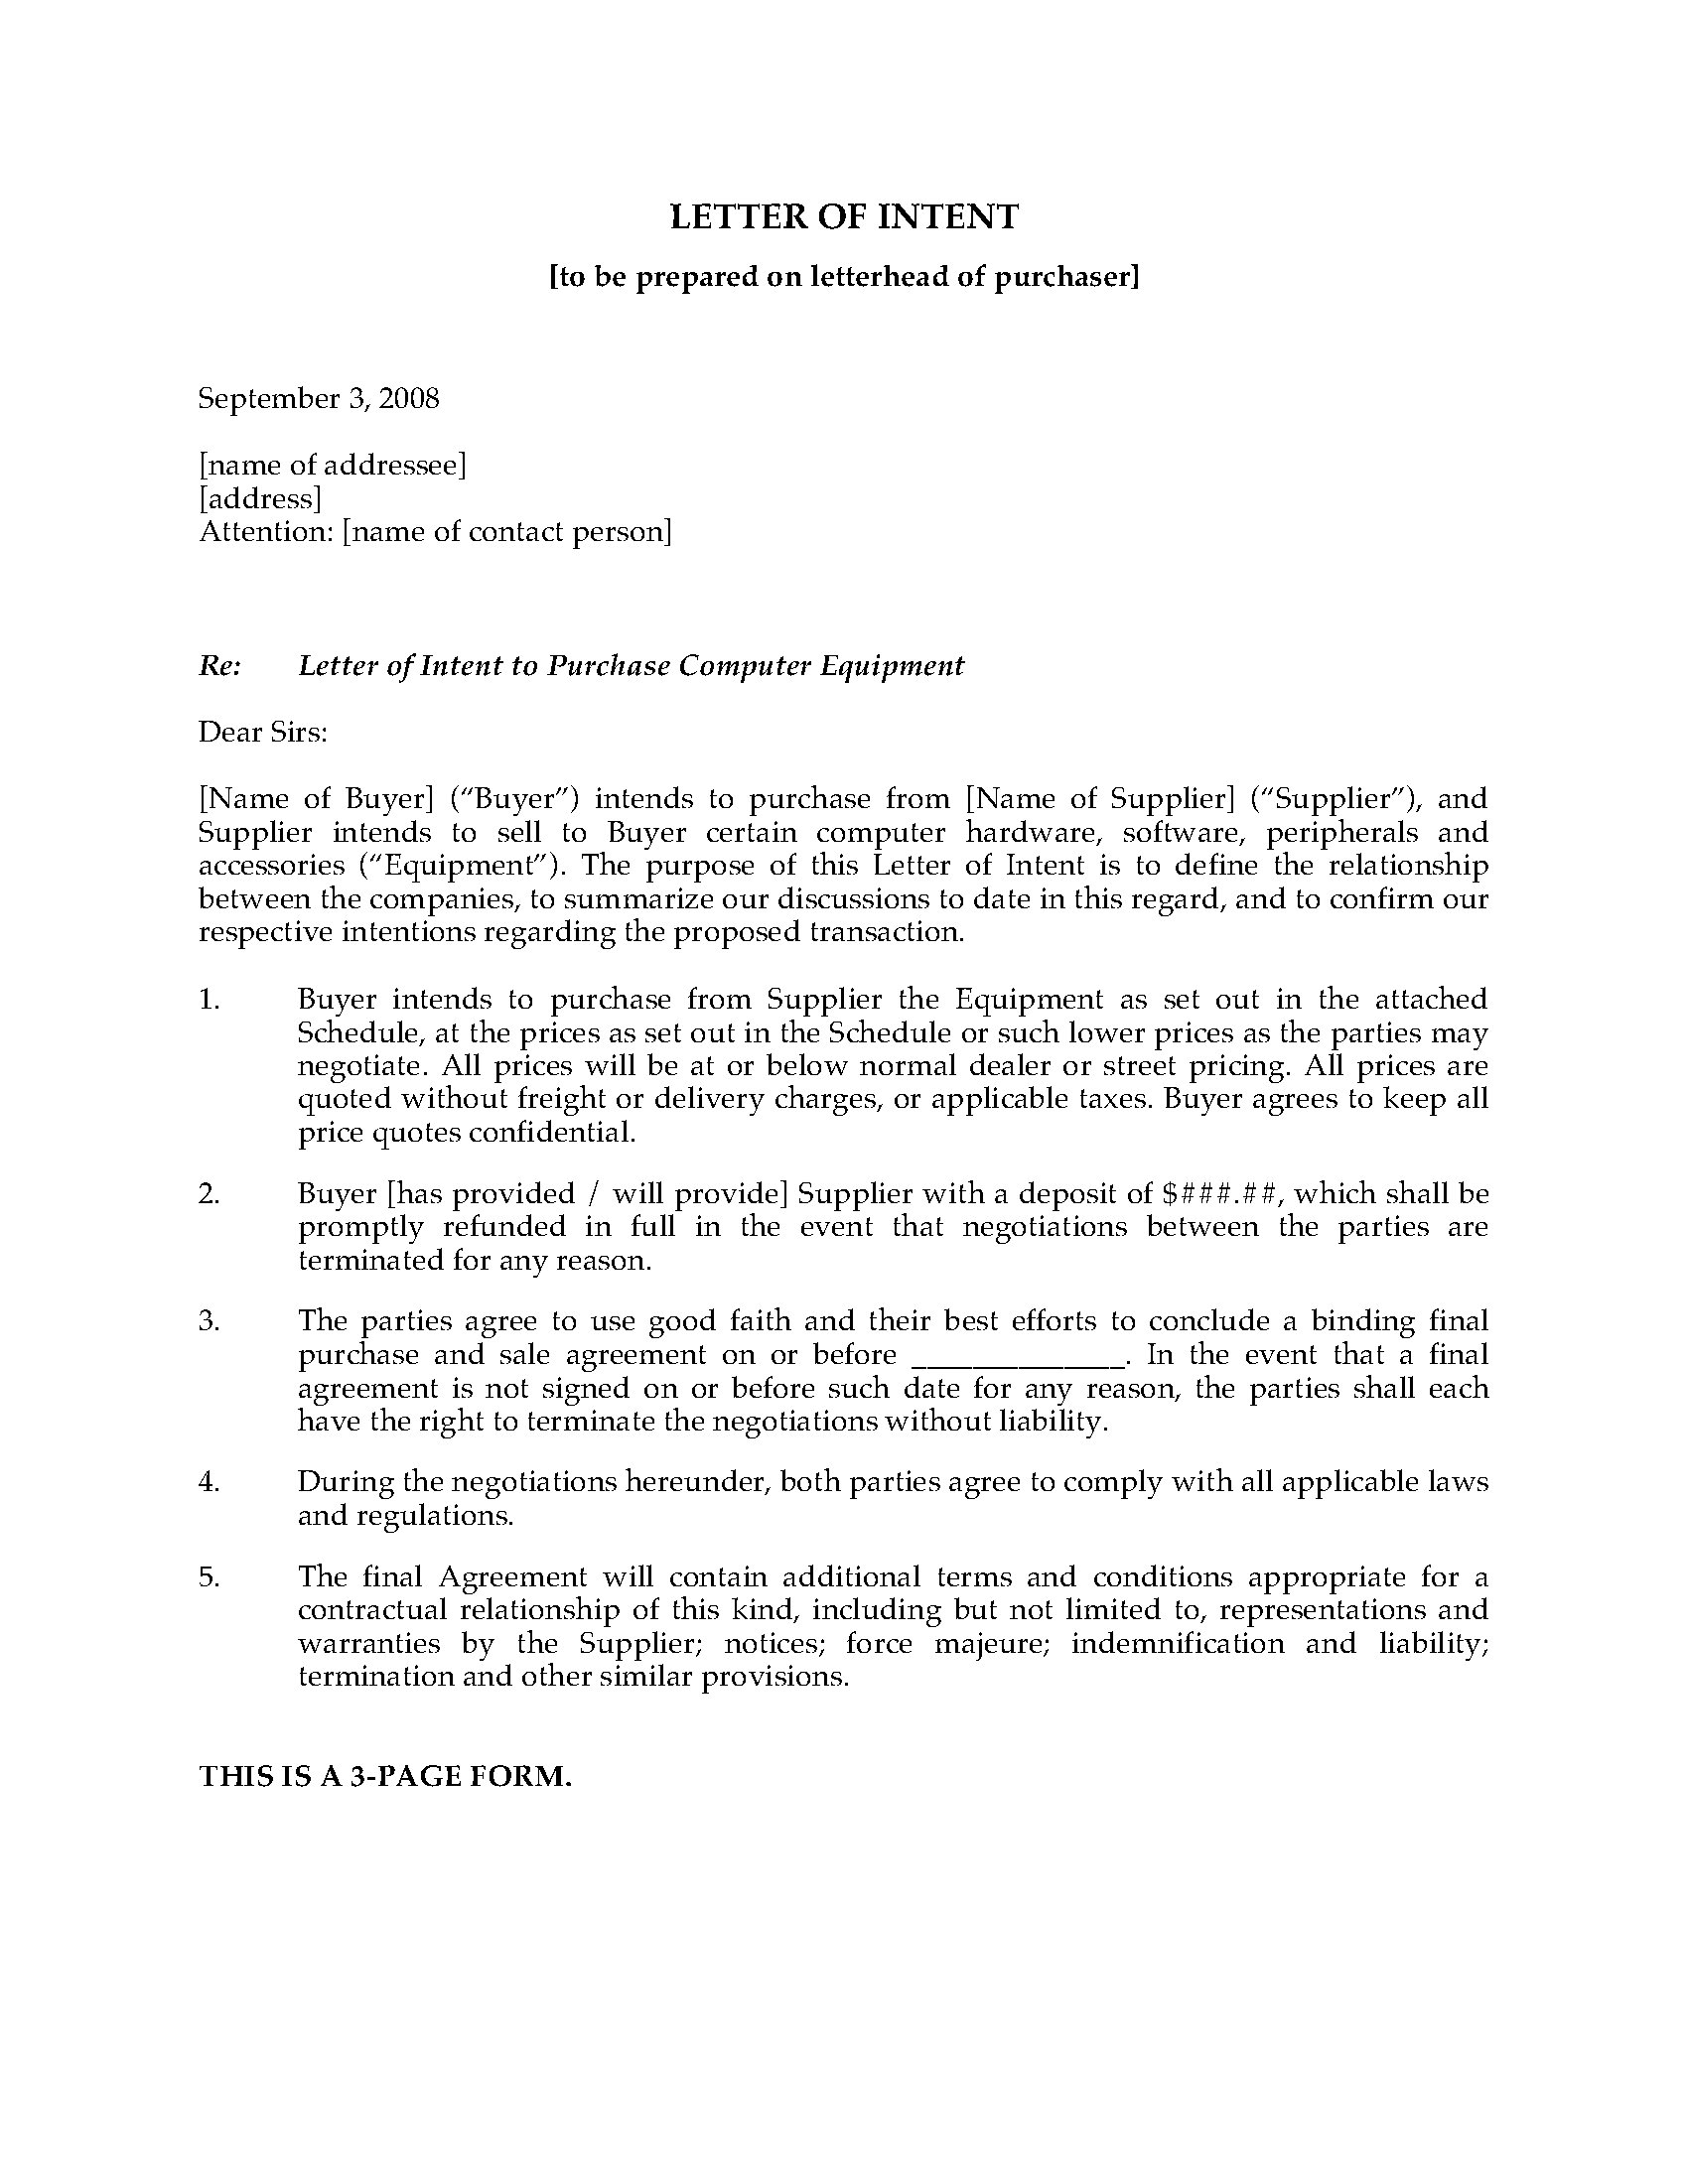 Letter Of Intent to Purchase Equipment Template - Letter Of Intent to Purchase Puter Equipment